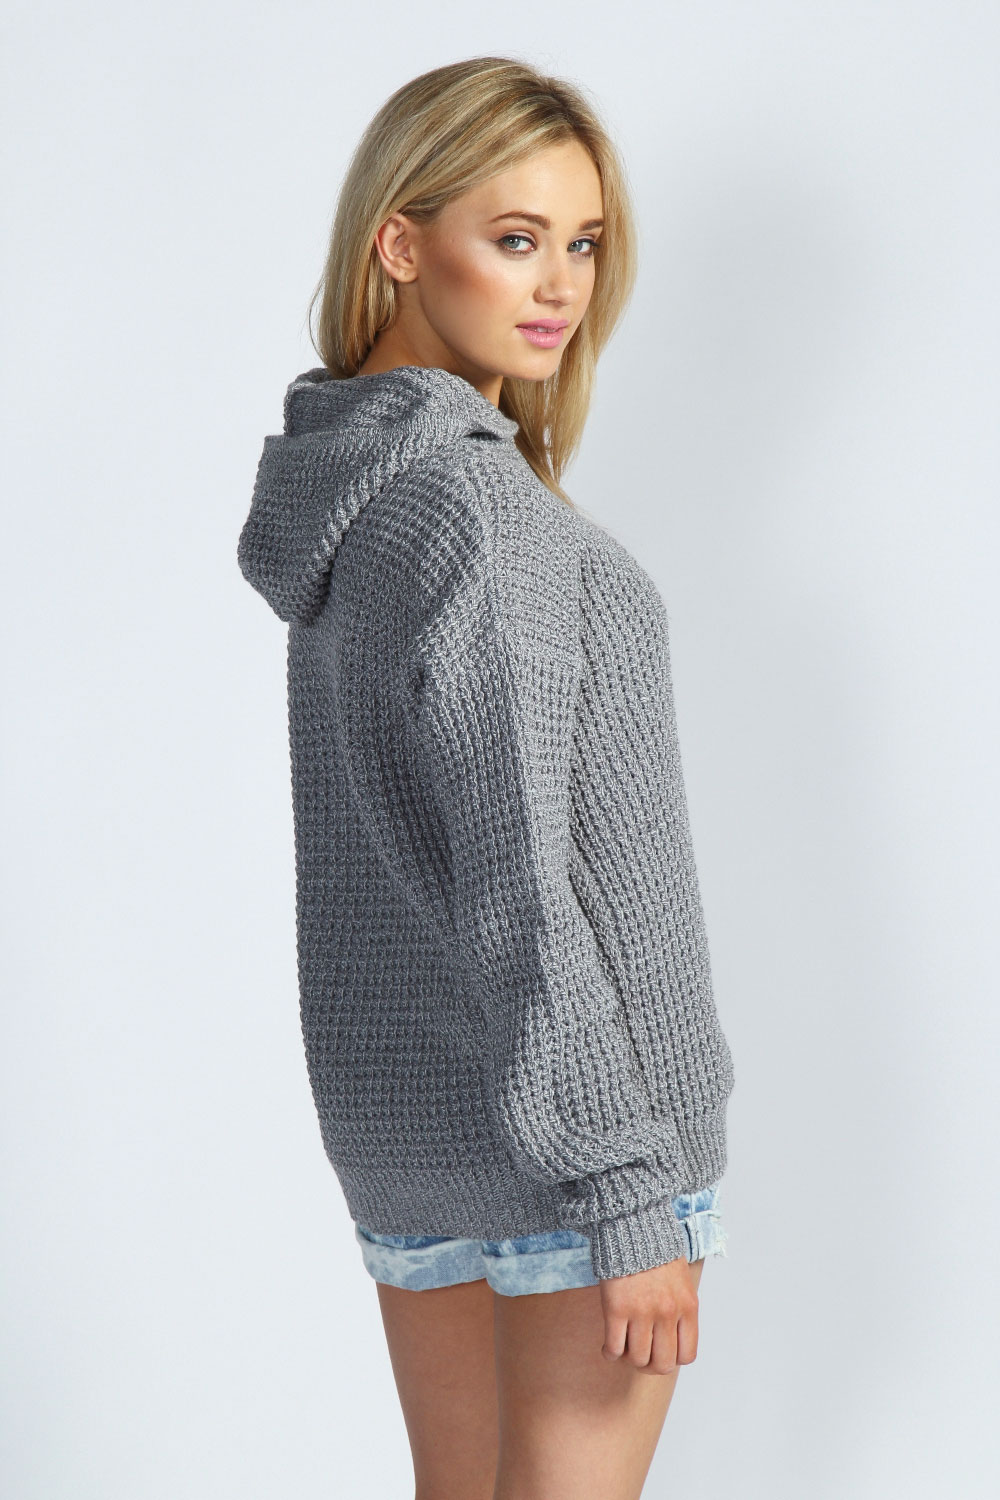 boohoo sasha waffel stricken marl pullover mit kapuze ebay. Black Bedroom Furniture Sets. Home Design Ideas